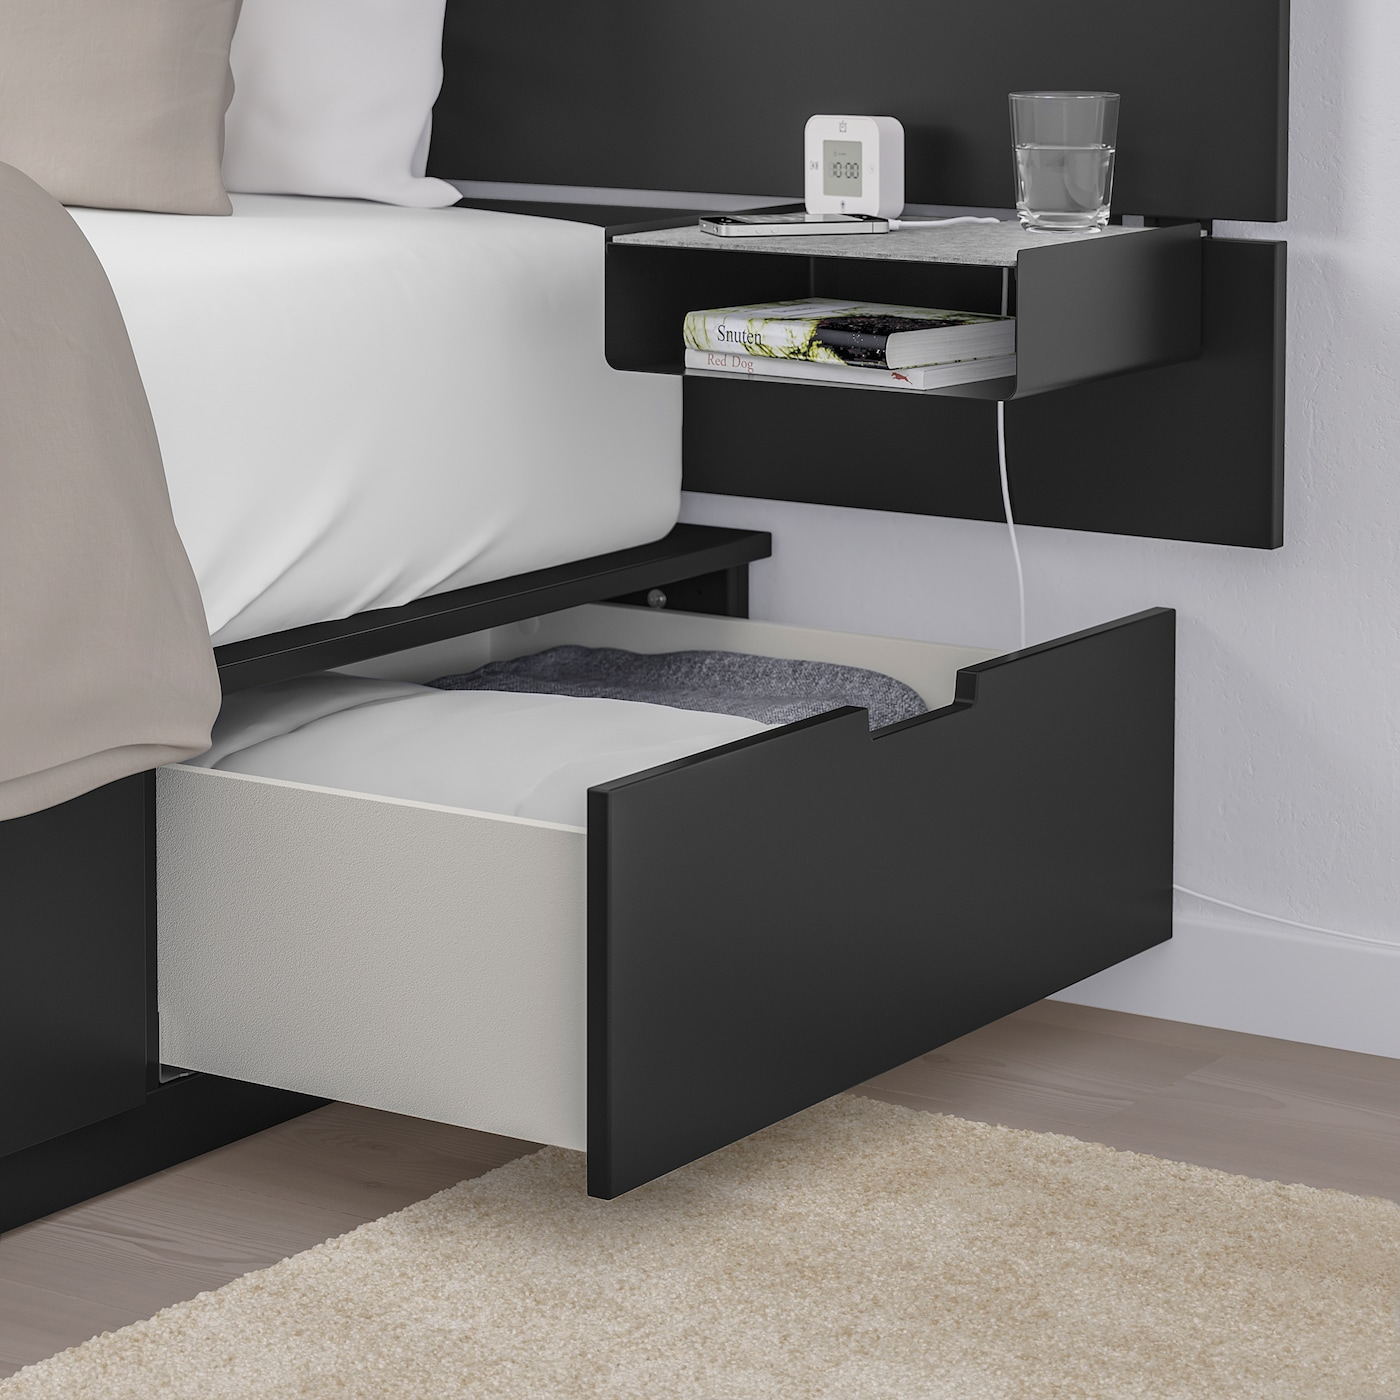 Nordli Bed With Headboard And Storage Anthracite King Ikea,3 Bedroom Apartments In St Louis